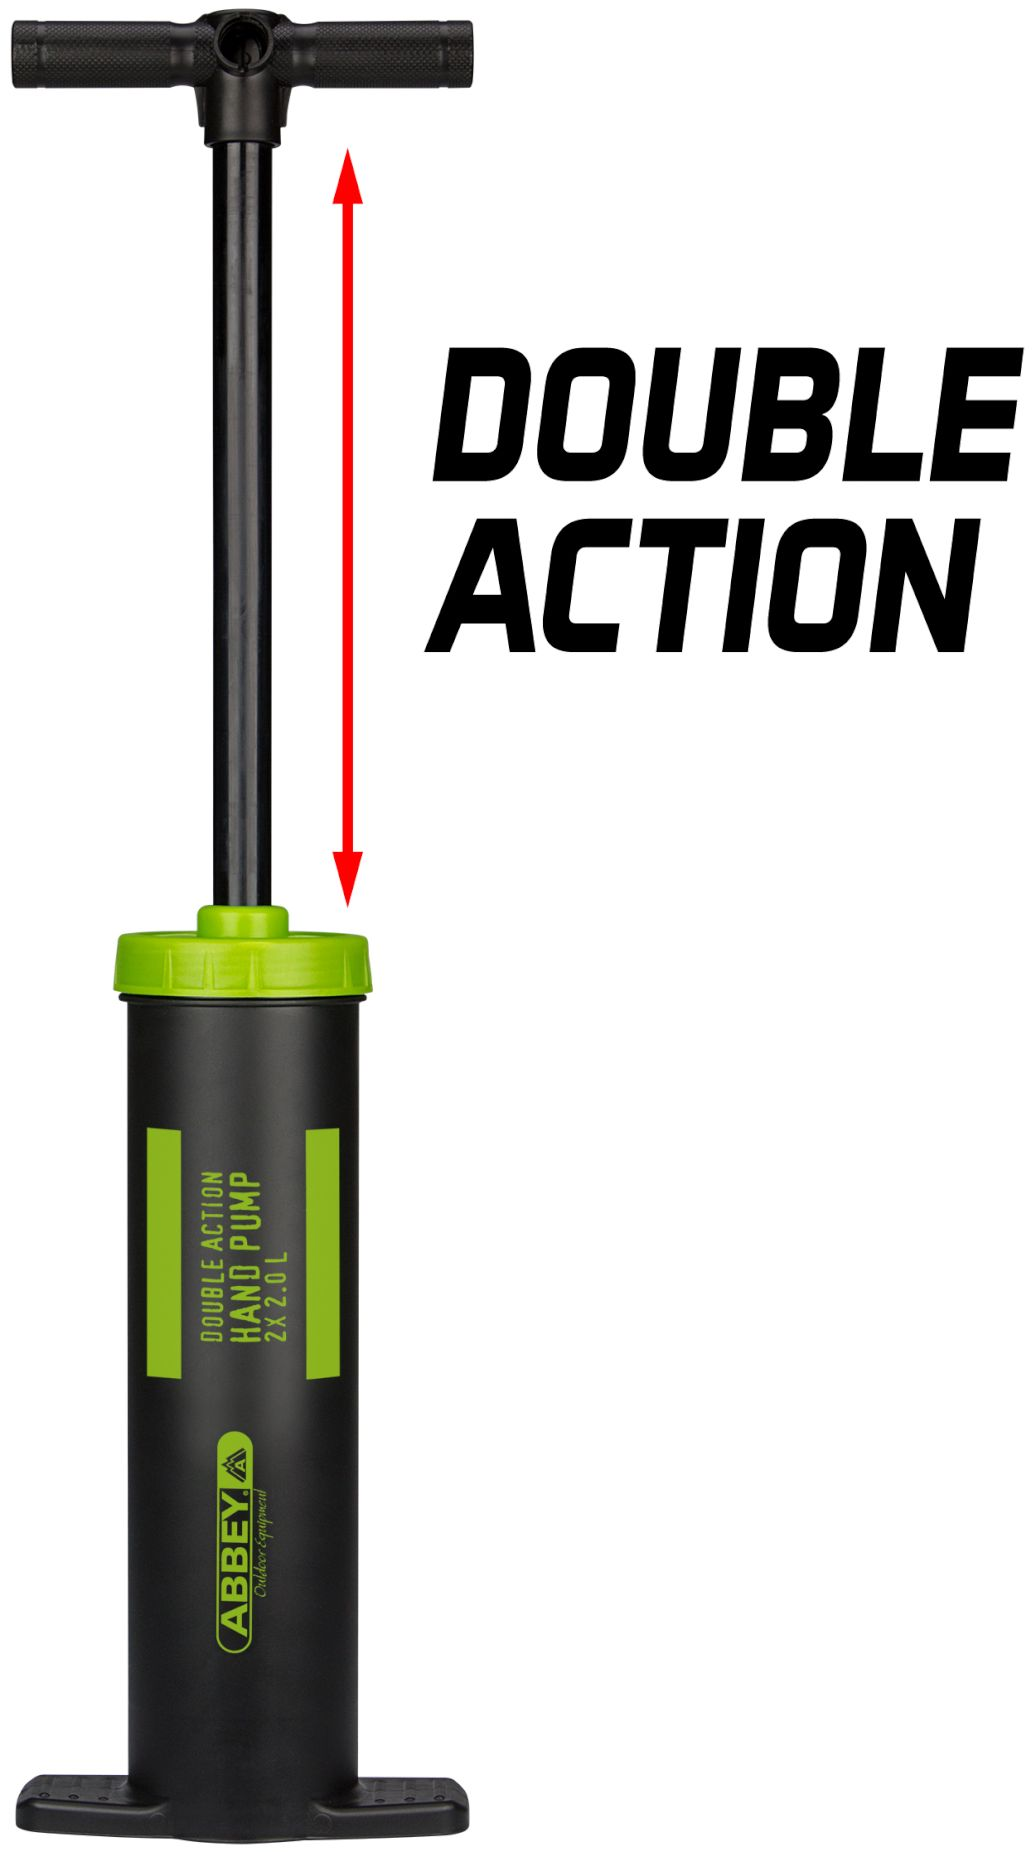 21AT-DOUBLEACTION